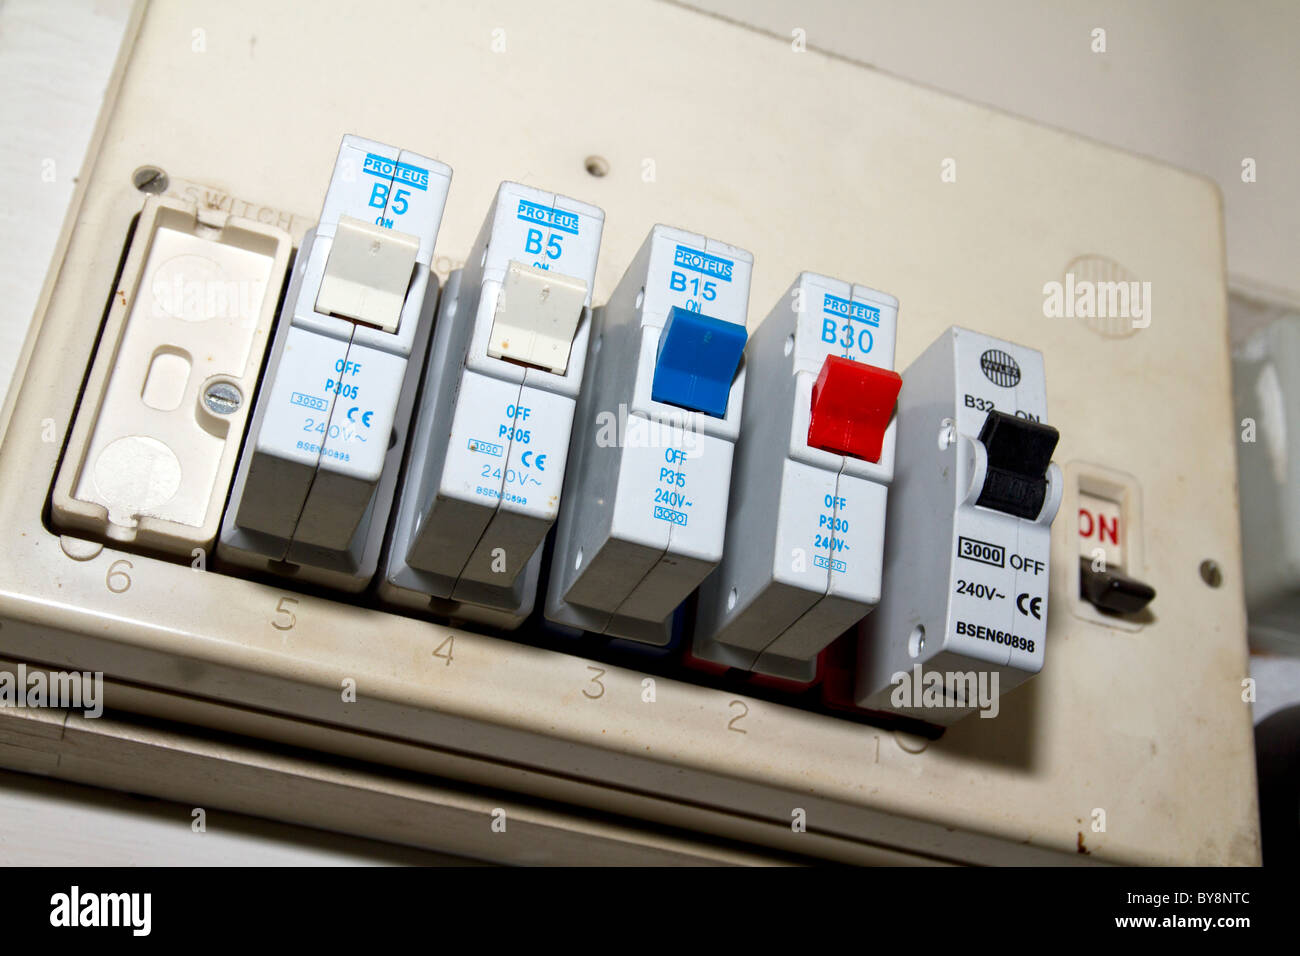 uk old electric fuse box in a london house stock photo 33998844 rh alamy com old house fuse box main lug old house fuse box wiring